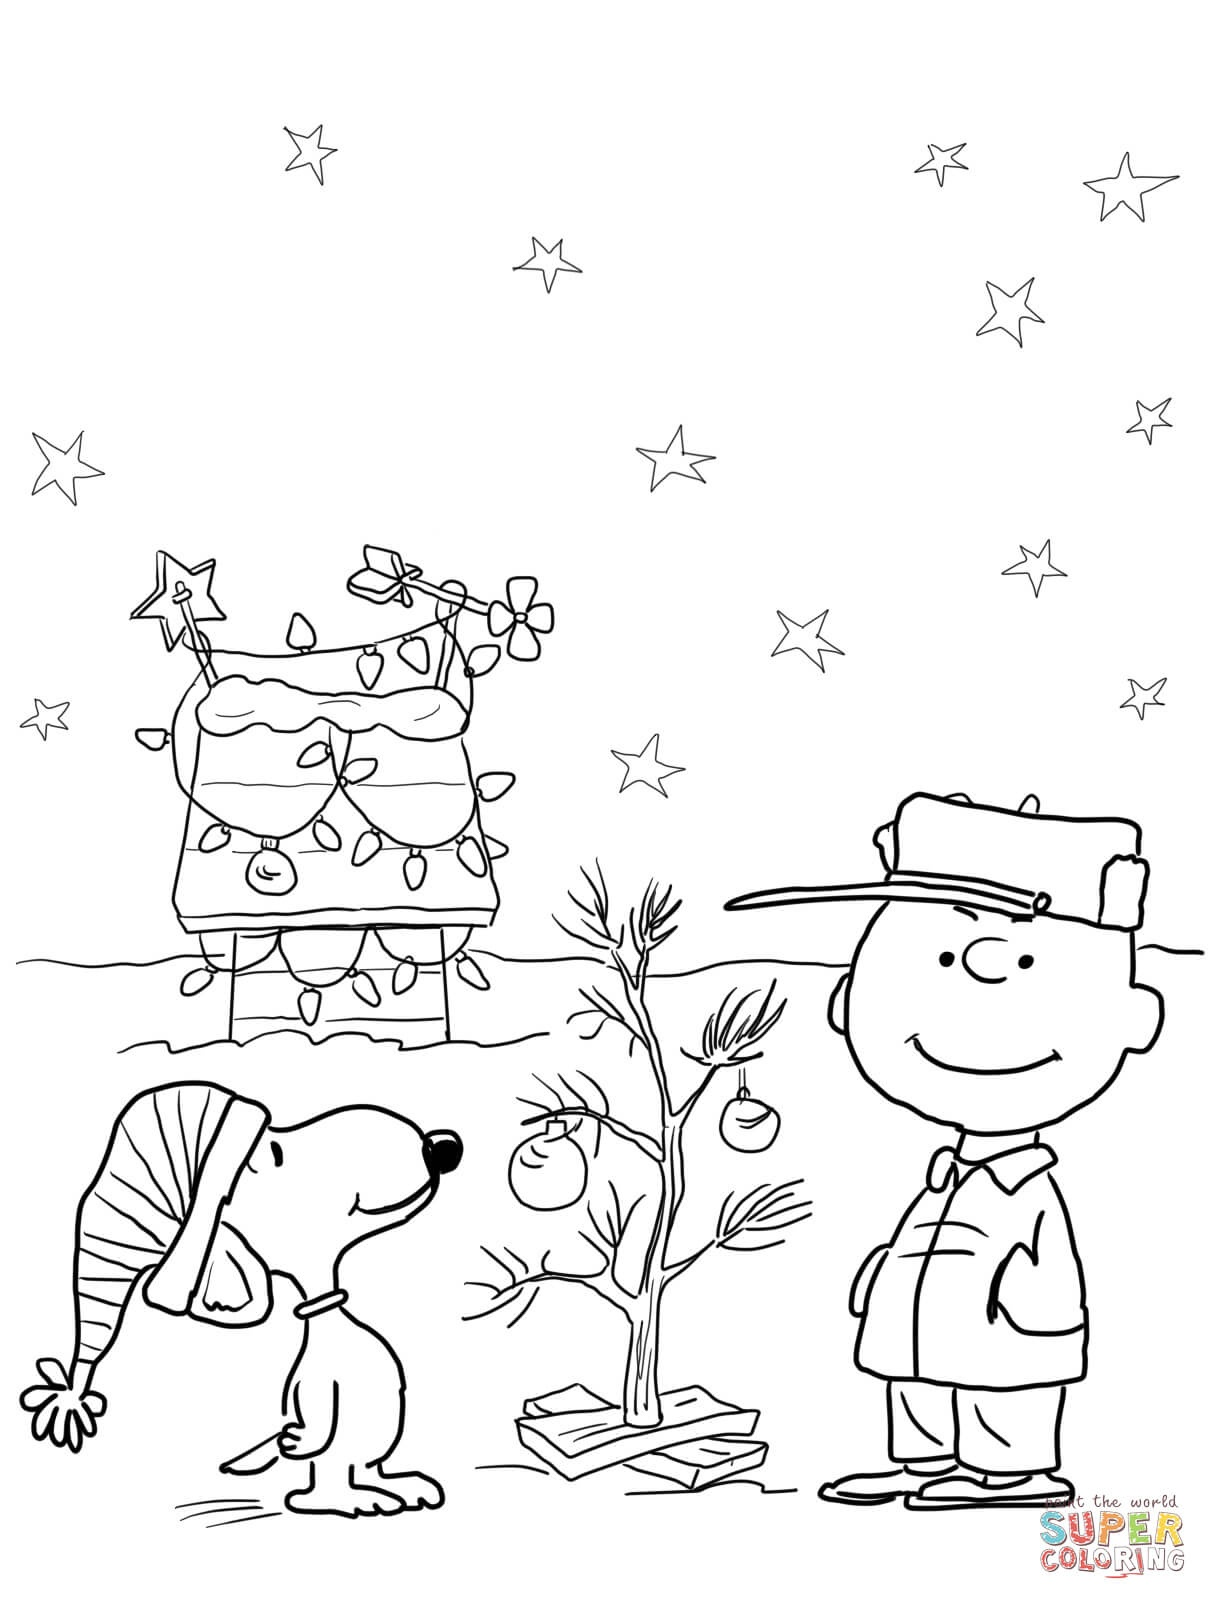 Charlie Brown Christmas Coloring Page | Free Printable Coloring Pages - Free Printable Christmas Cartoon Coloring Pages